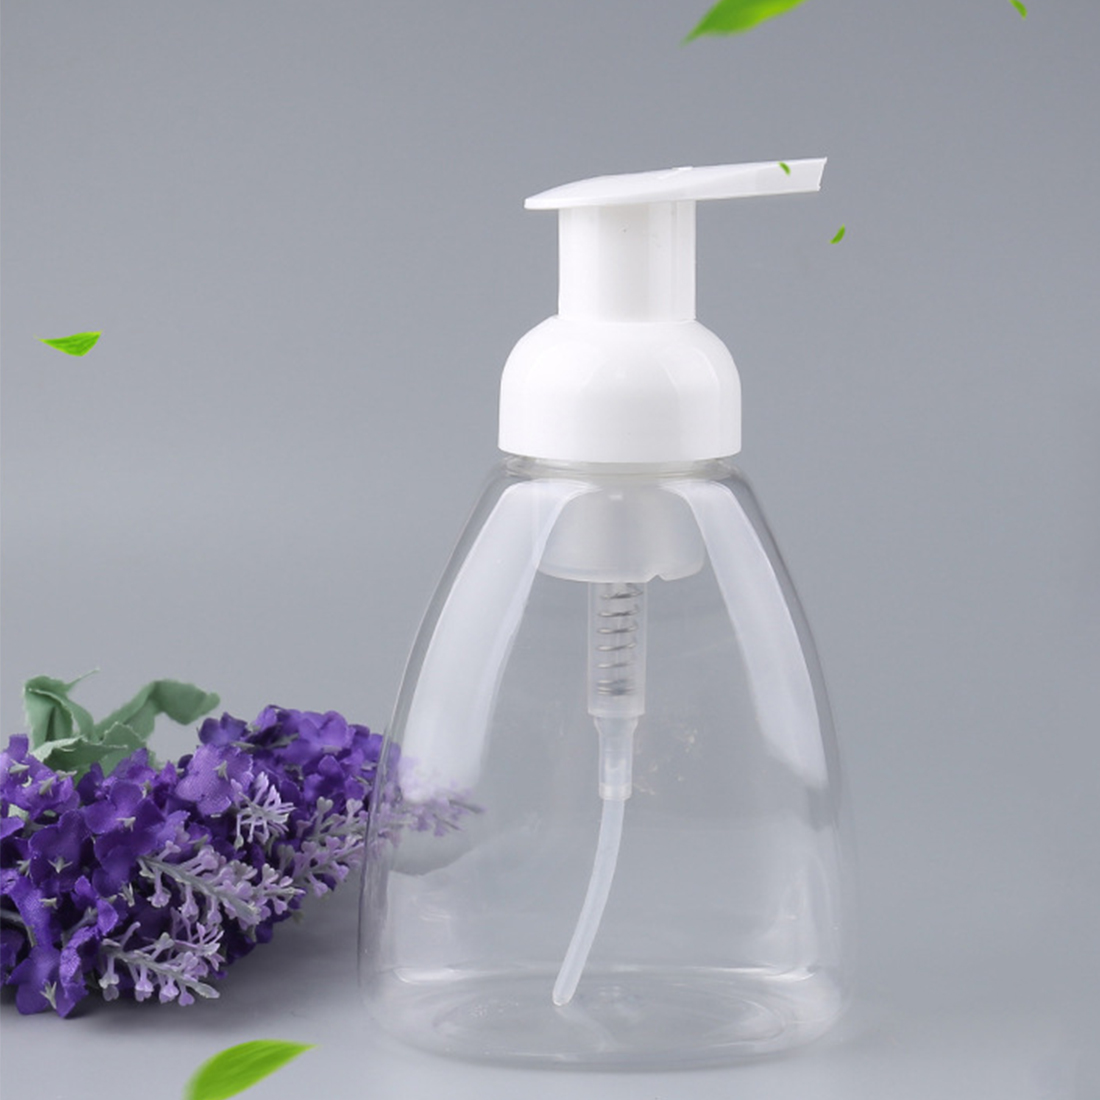 Home Improvement 10pcs Natural Liquid Soap Dispensers Soap Sack Saver Pouch Nylon Drawstring Holder Bags For Making Bubbles Soap Drop Shipping Special Buy